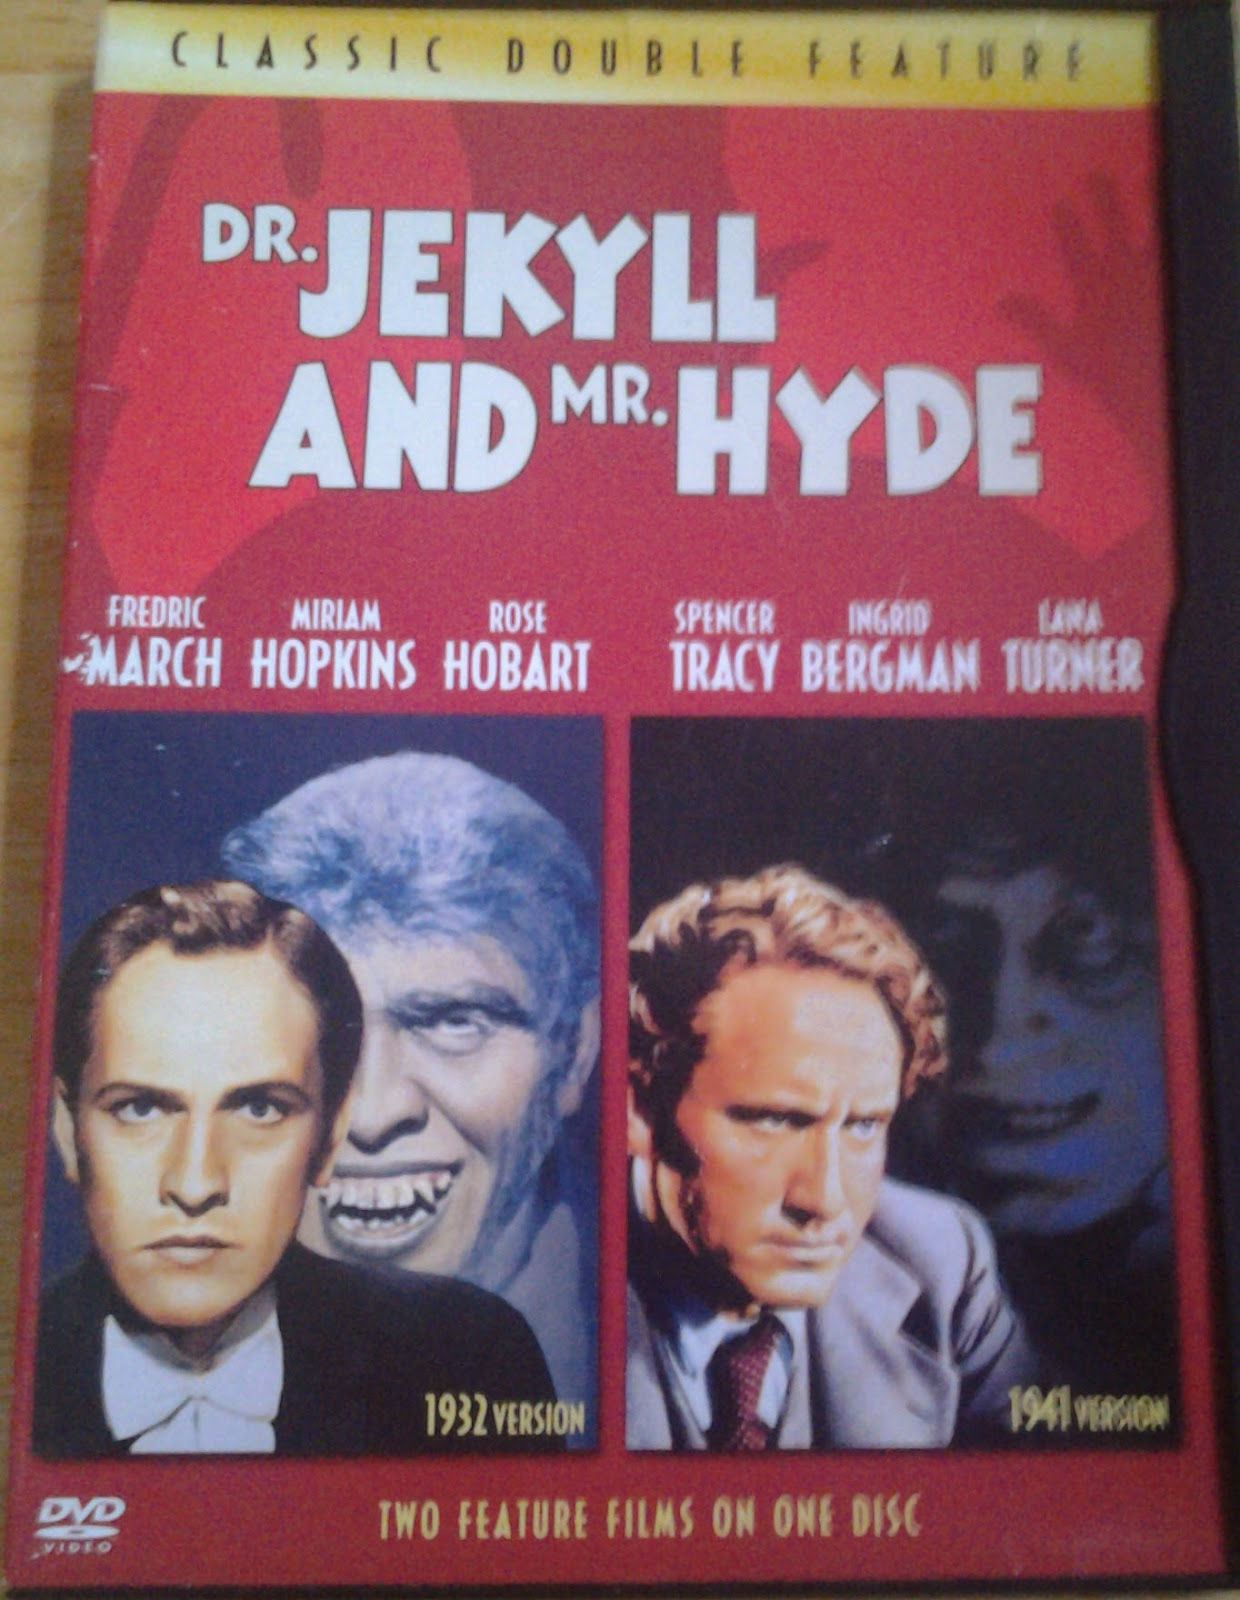 DVD Cover - Dr Jekyll and Mr. Hyde